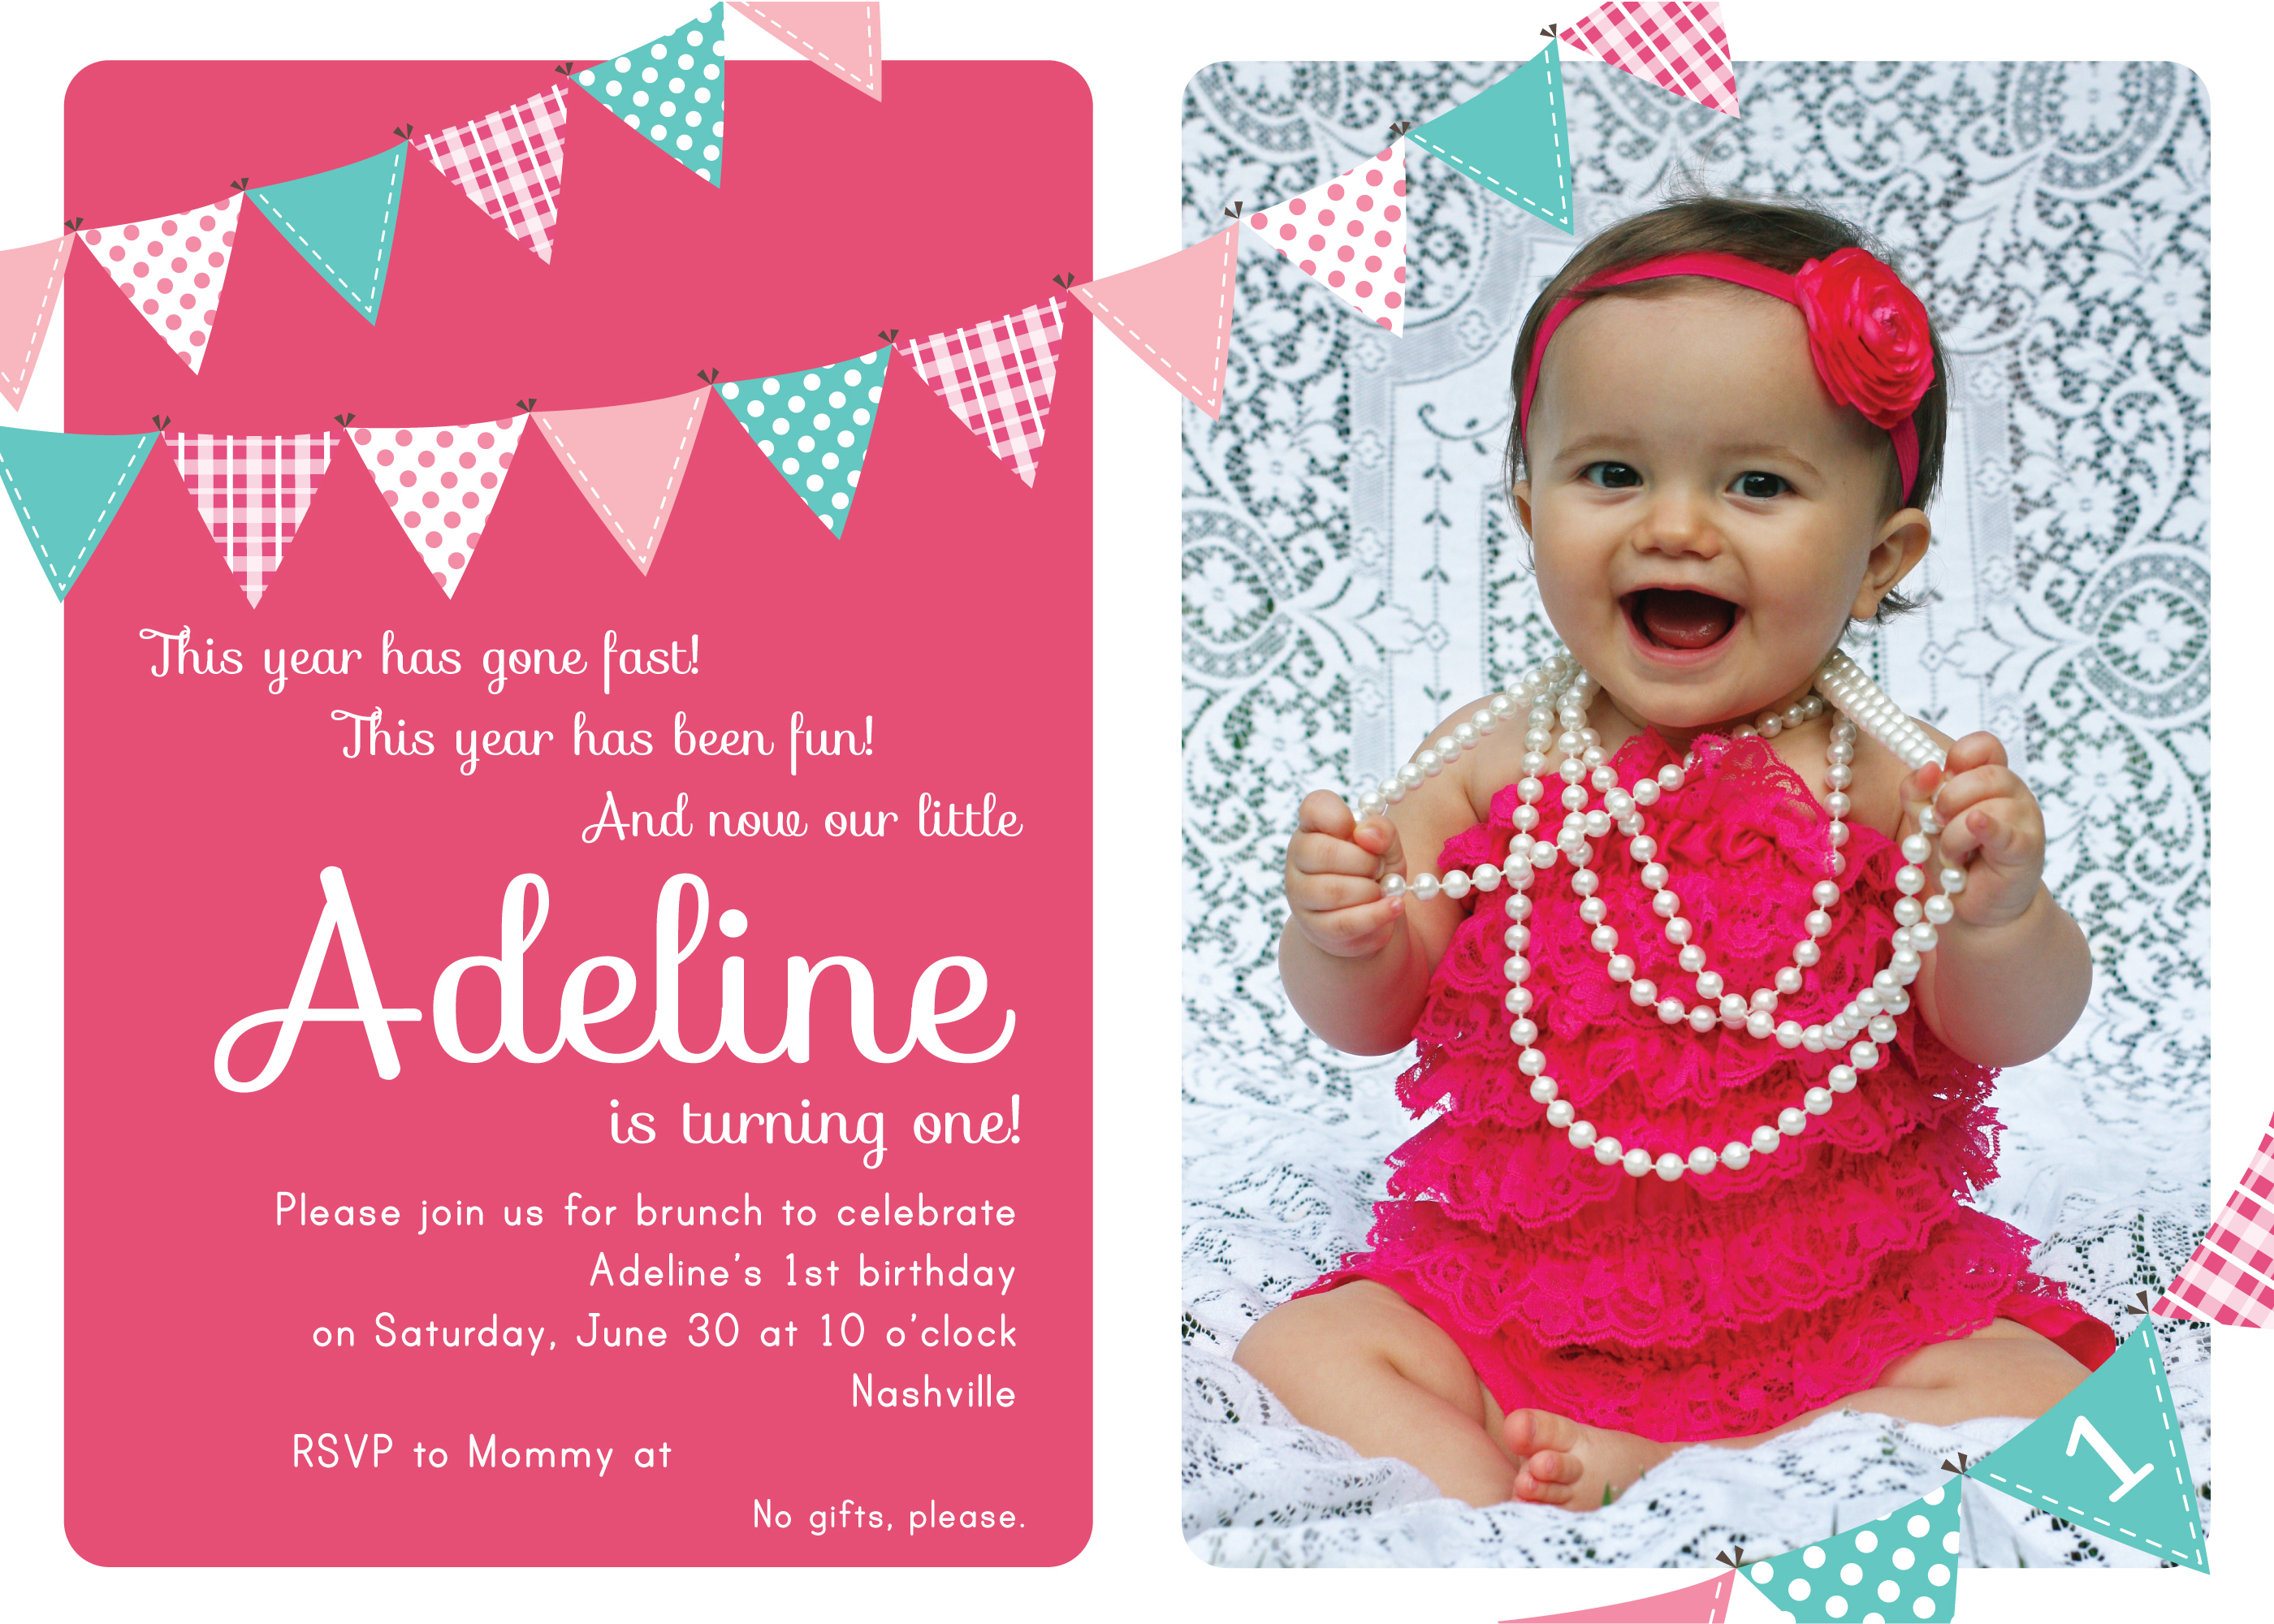 Adeline\'s 1st Birthday Party: Pom Poms, Pennants and Pinwheels - The ...